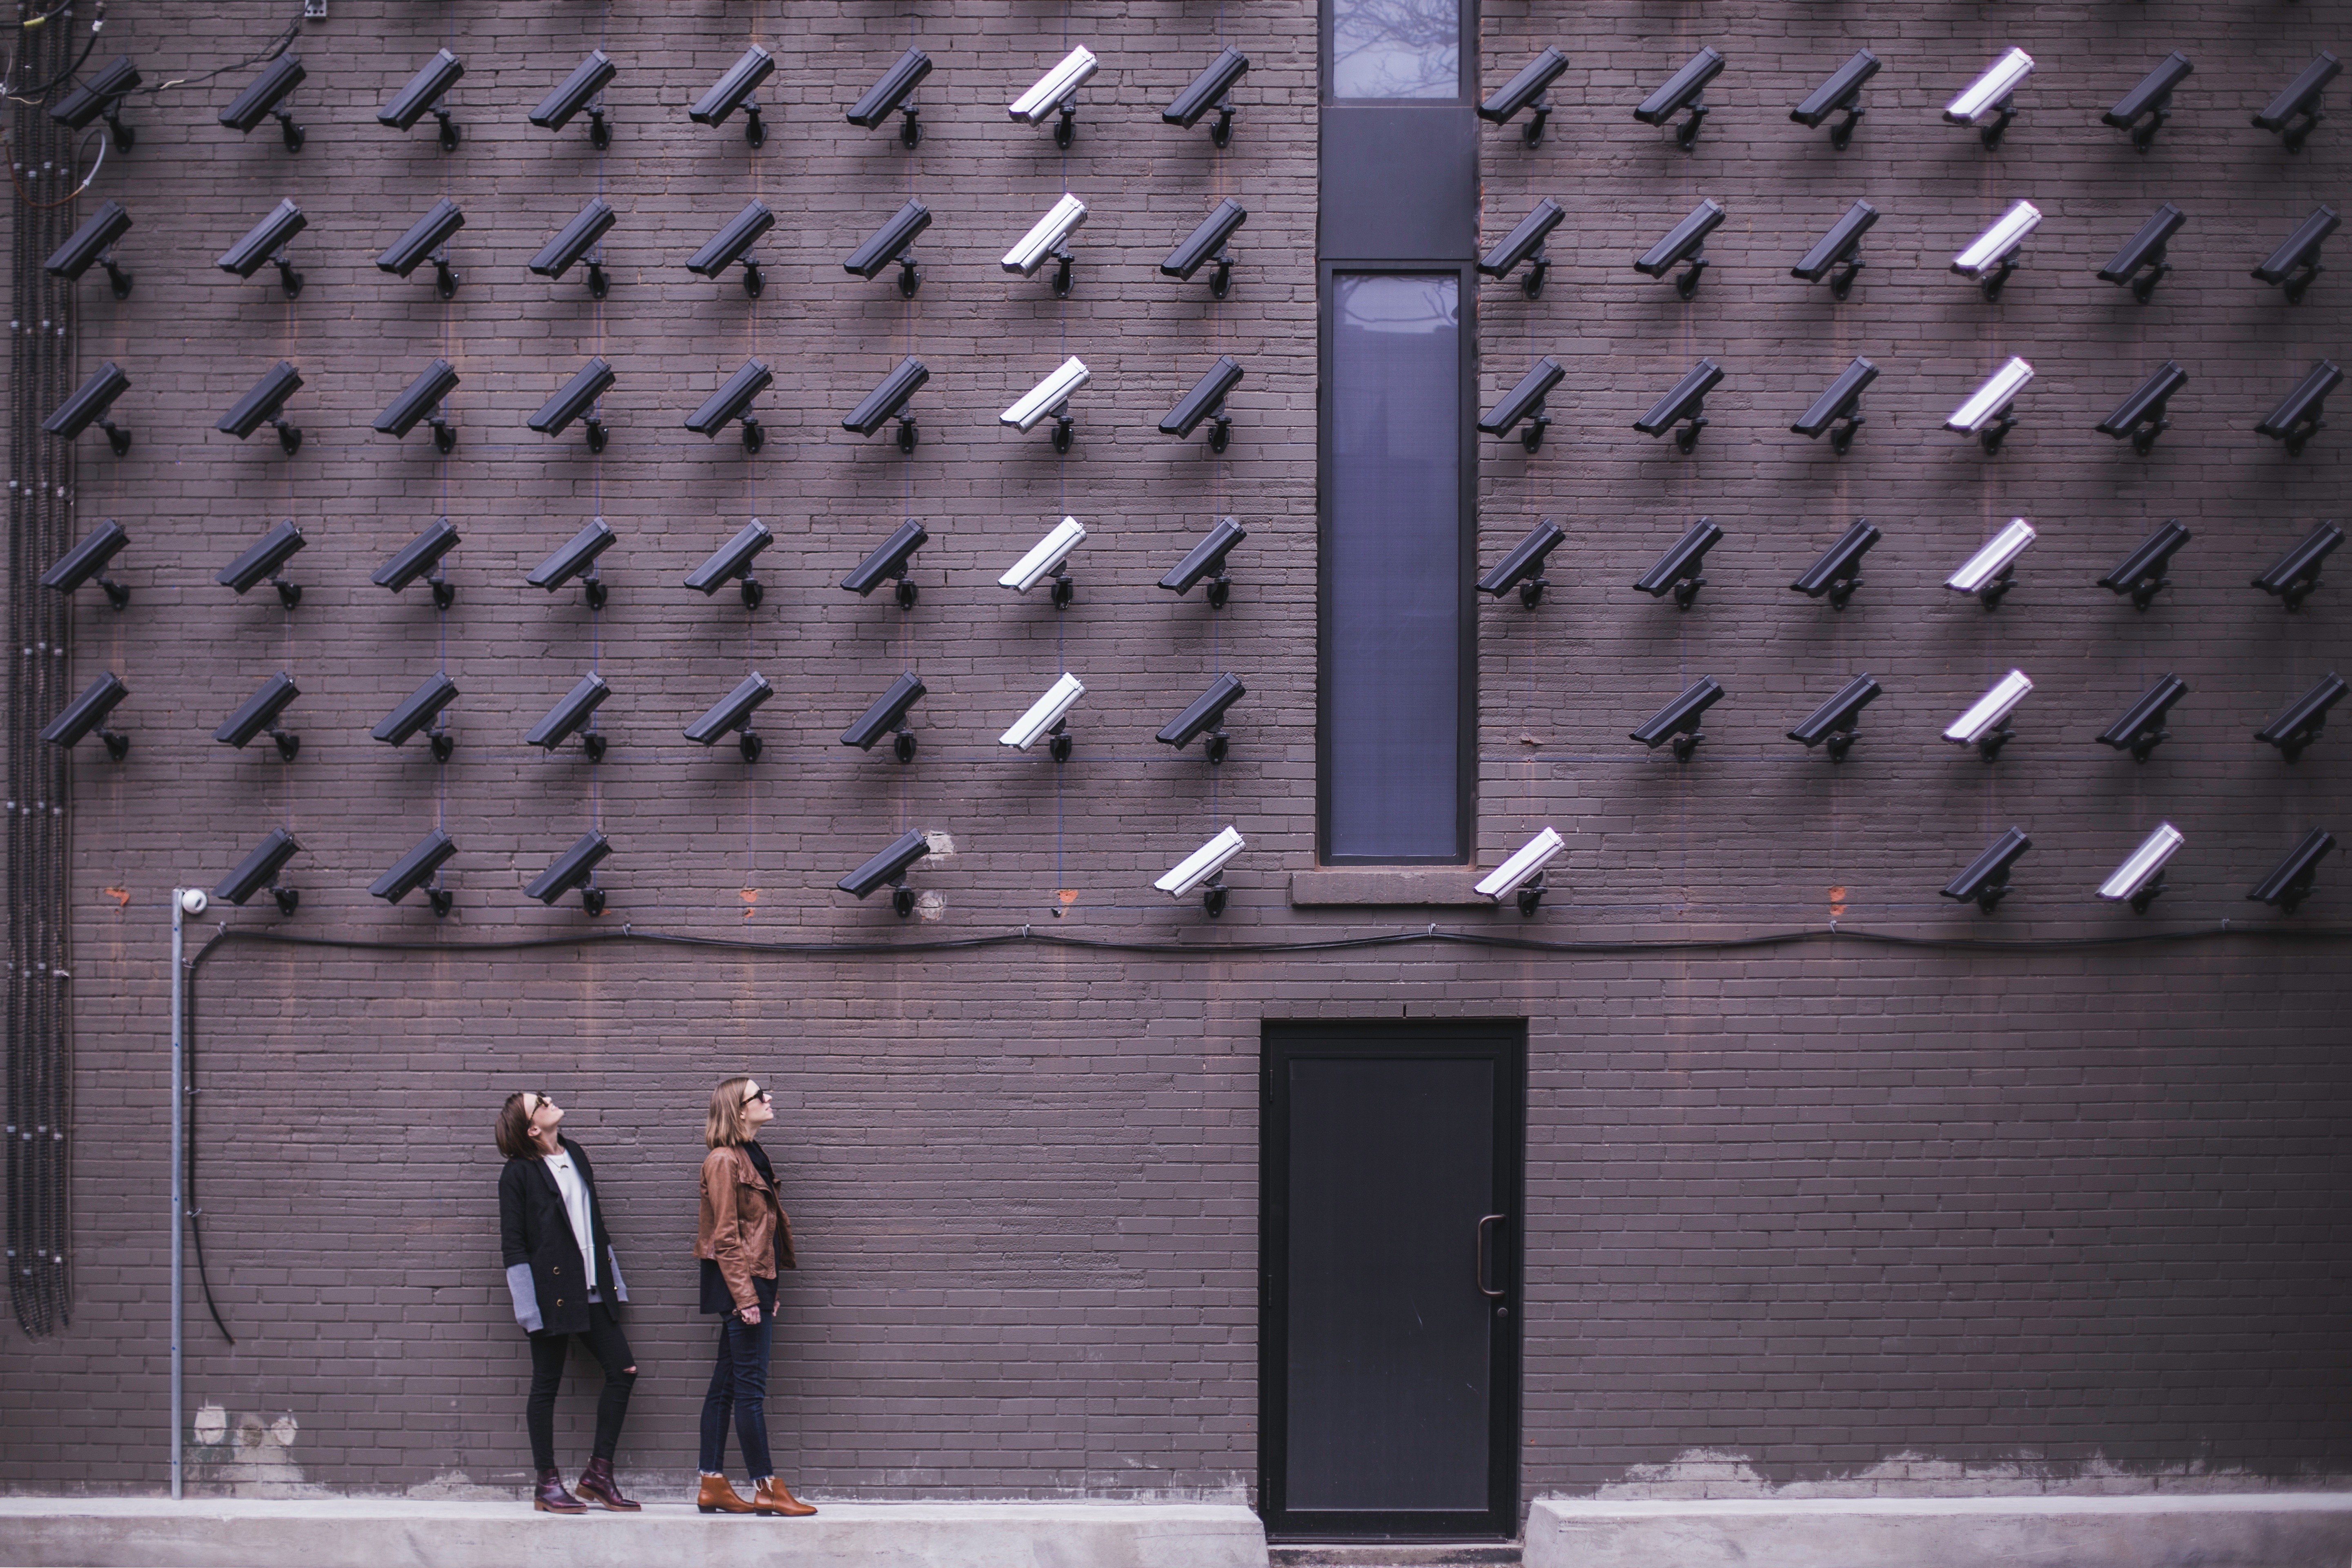 Humans being monitored